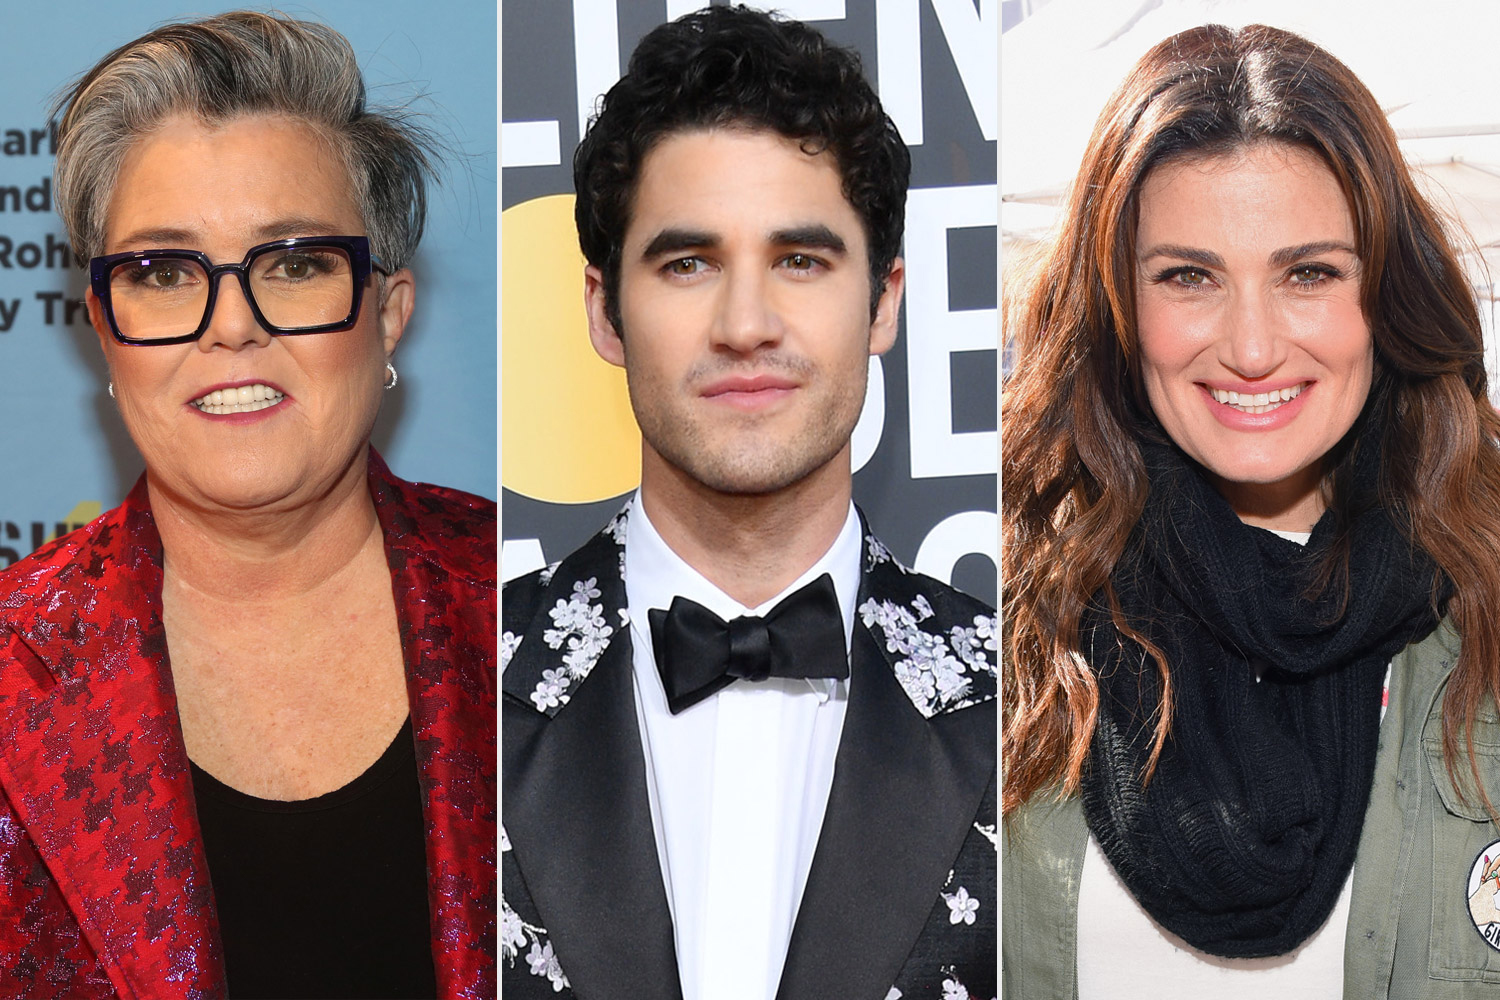 Rosie, Darren Criss, and Idina-Menzel